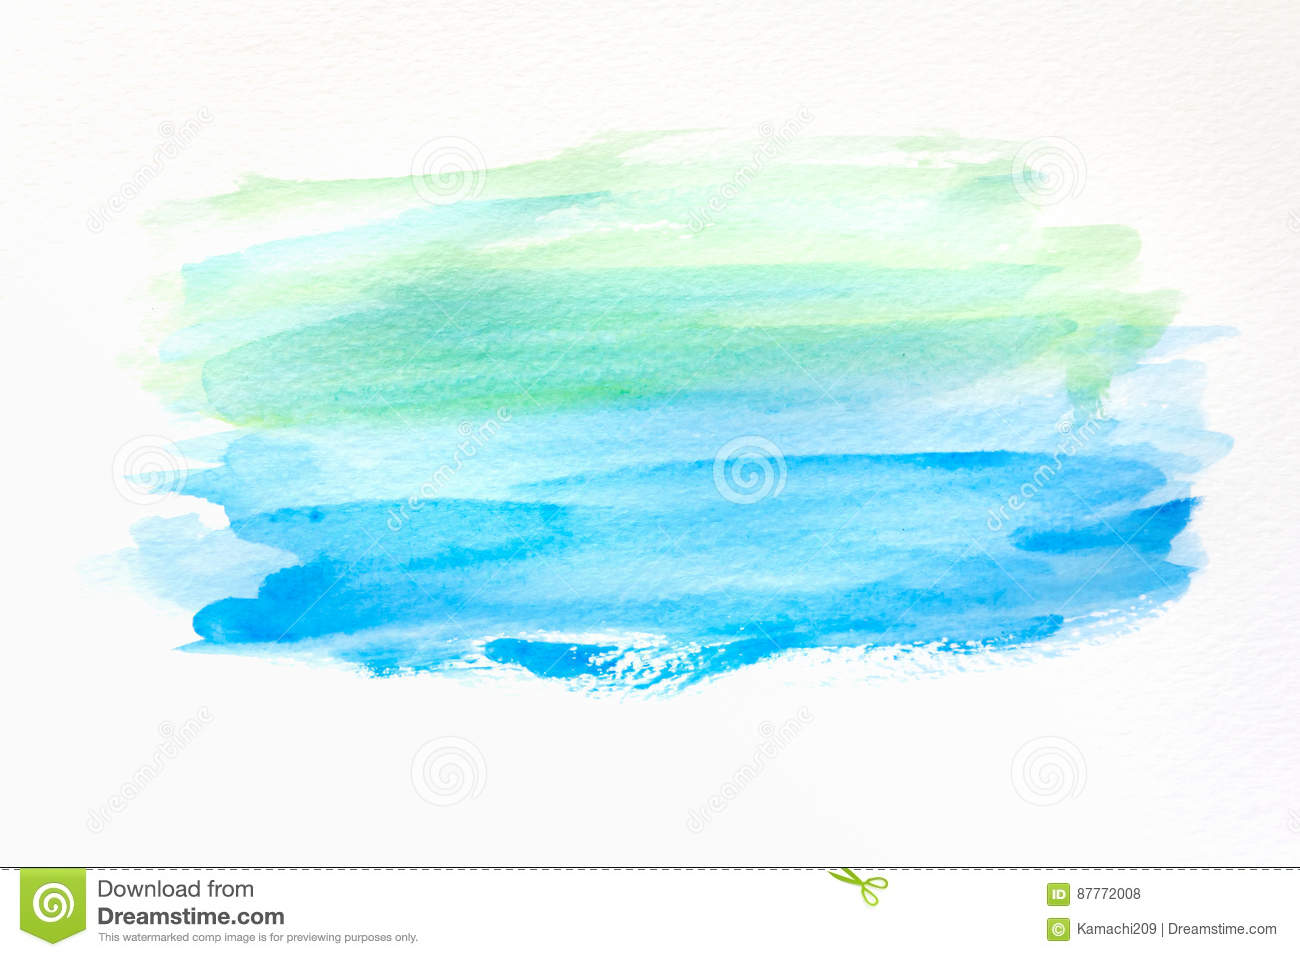 Abstract hand painted watercolor background on paper. texture for creative wallpaper or design artwork